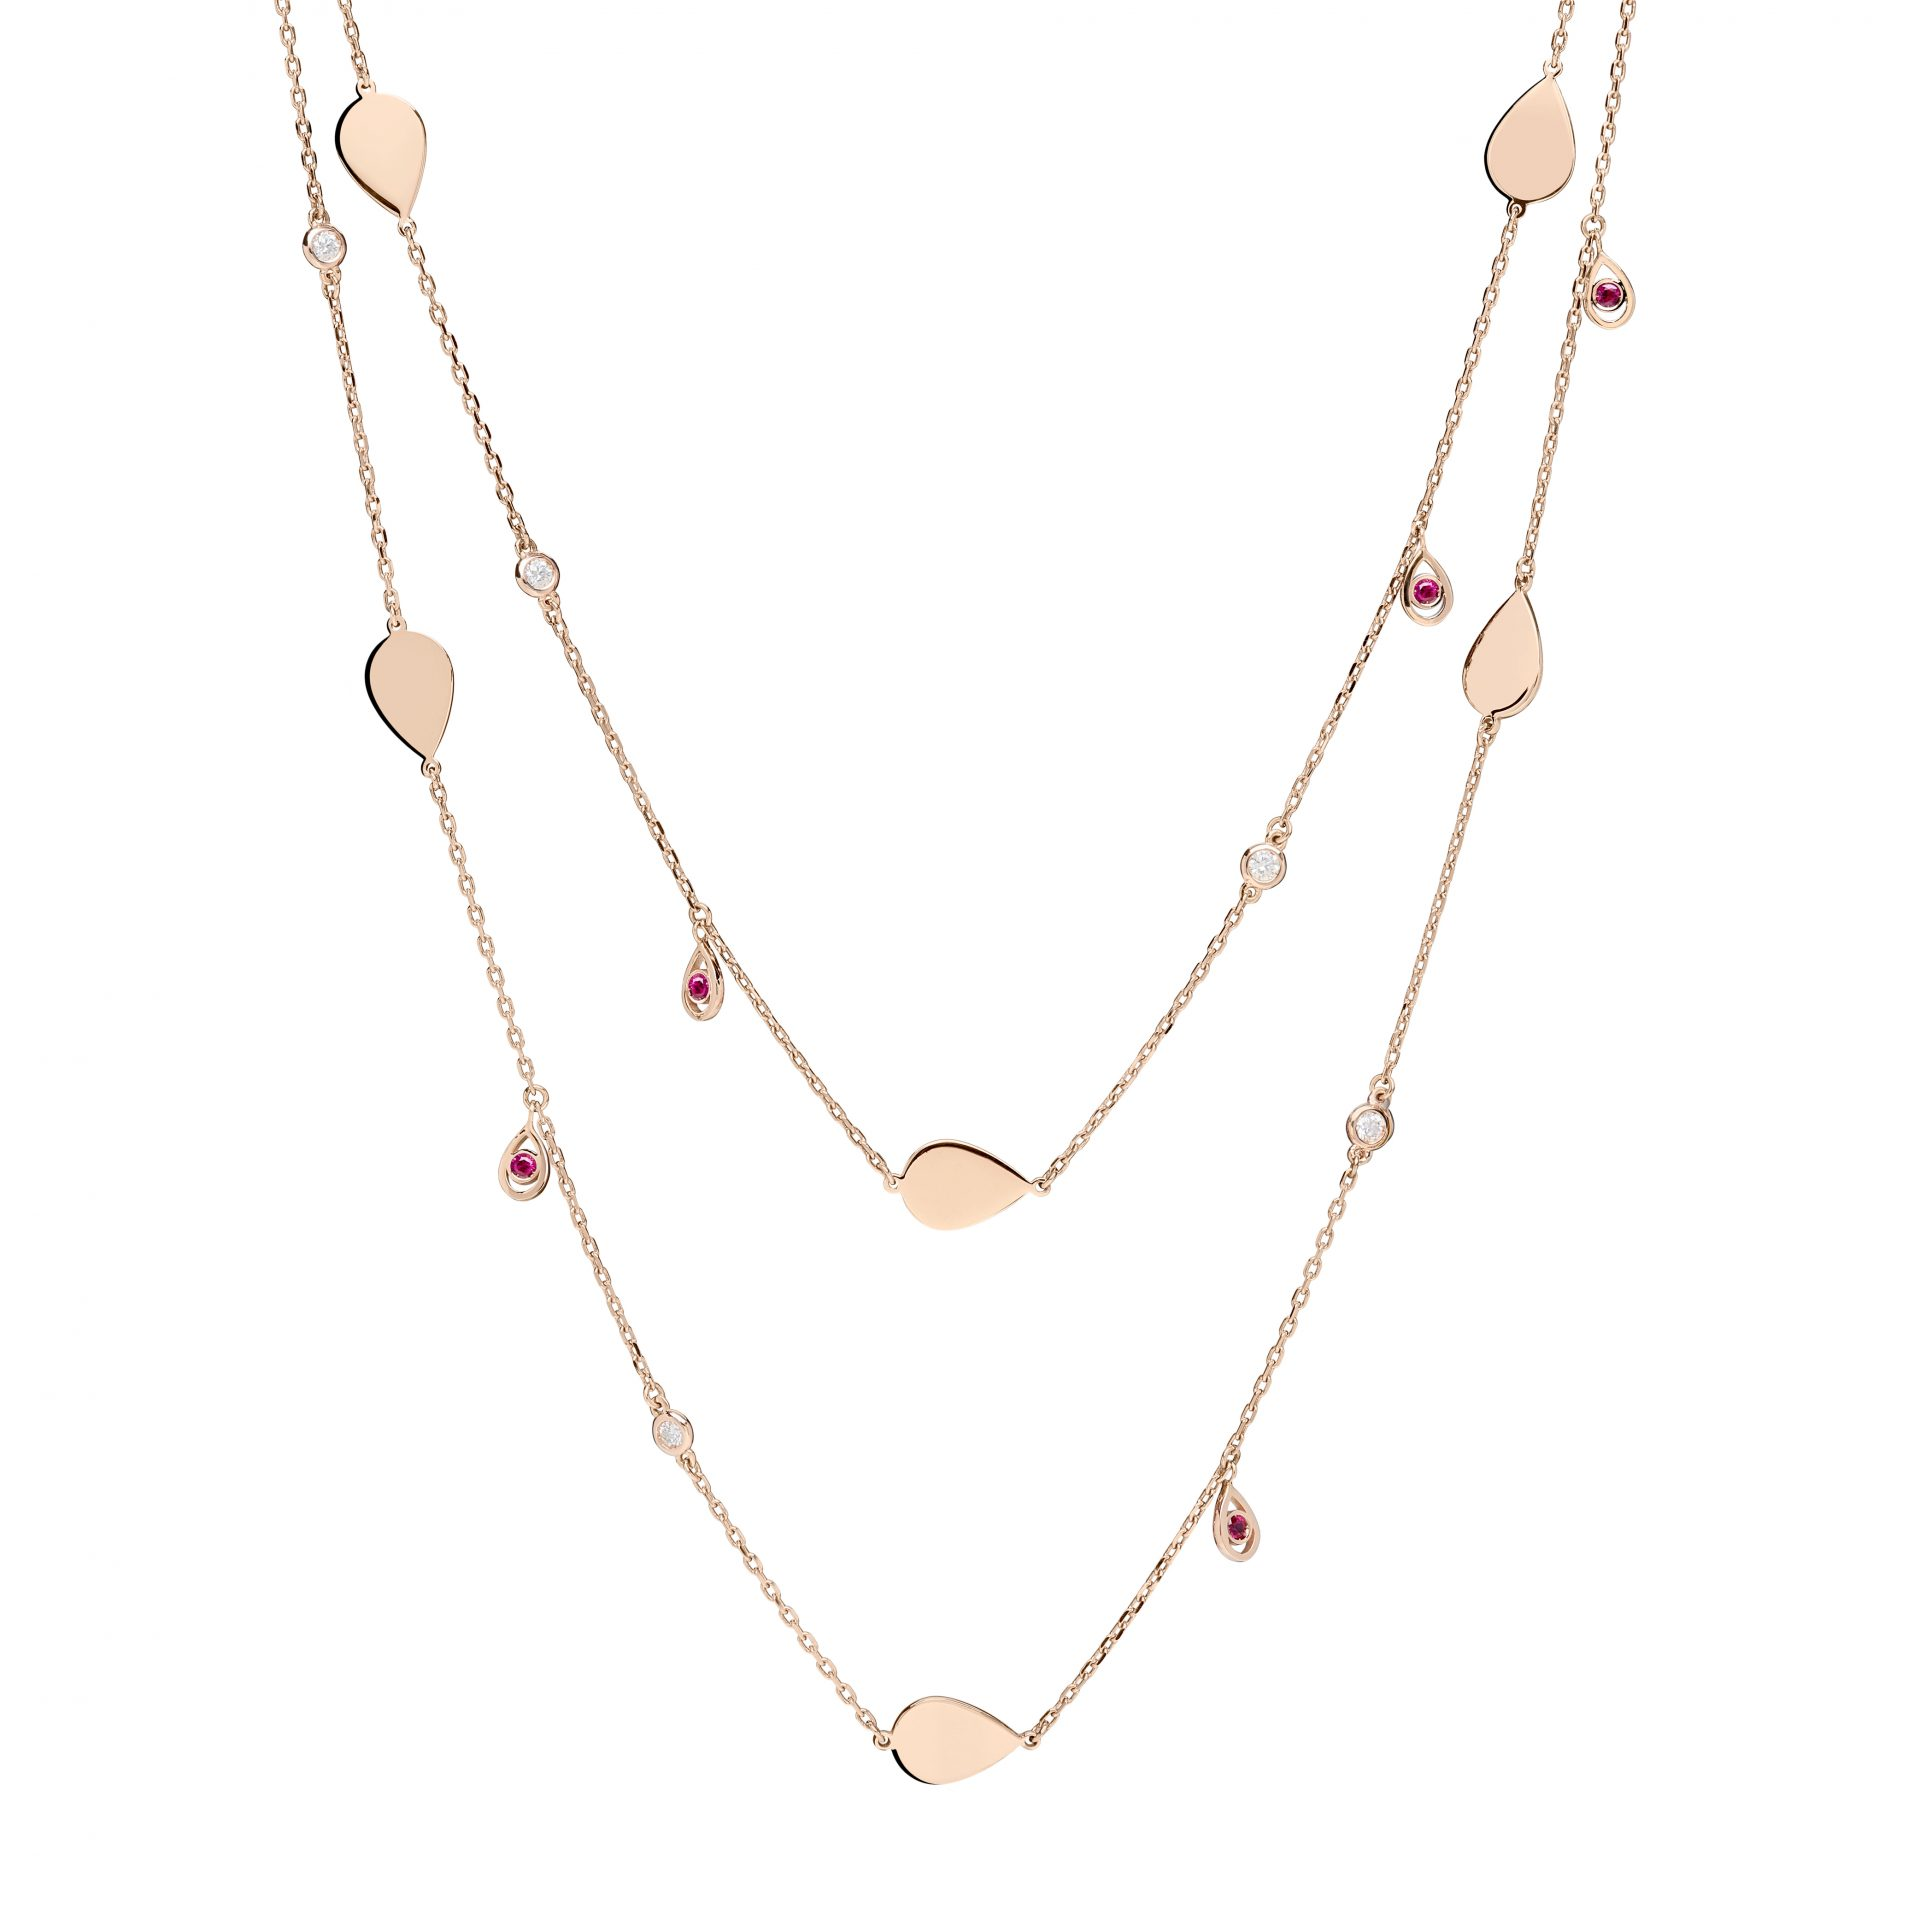 Ruby Candy Necklace